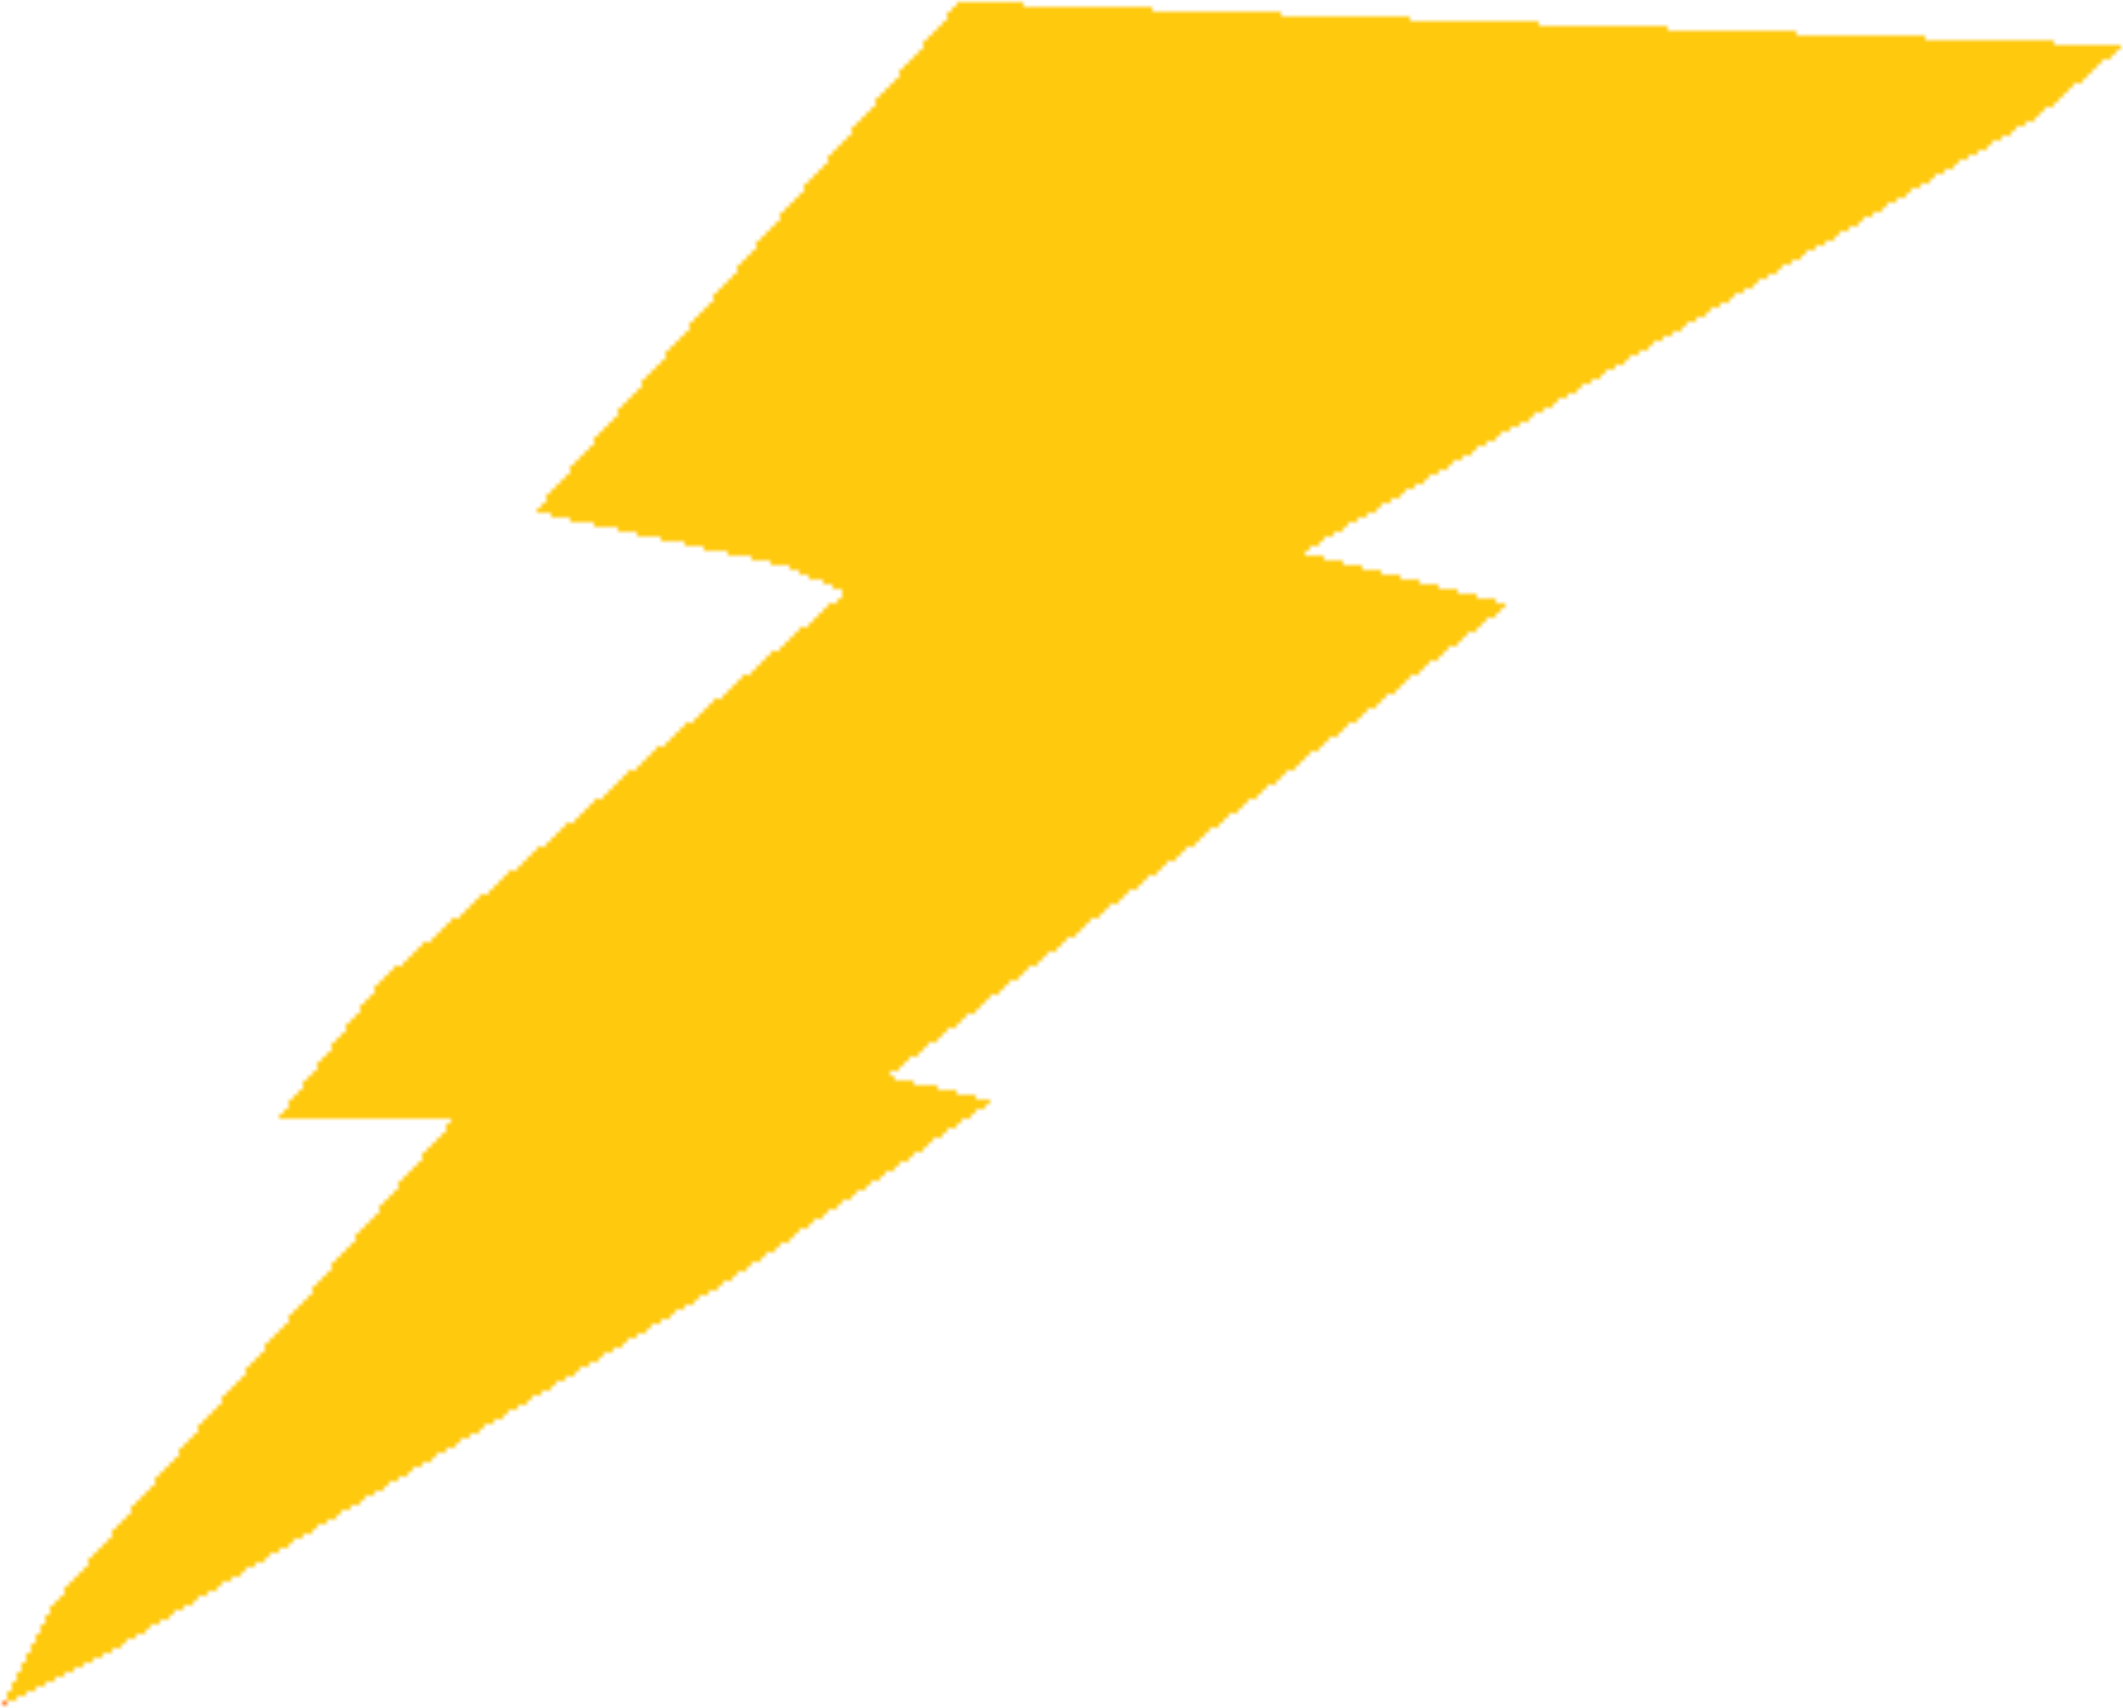 lightning clipart lightning bolt